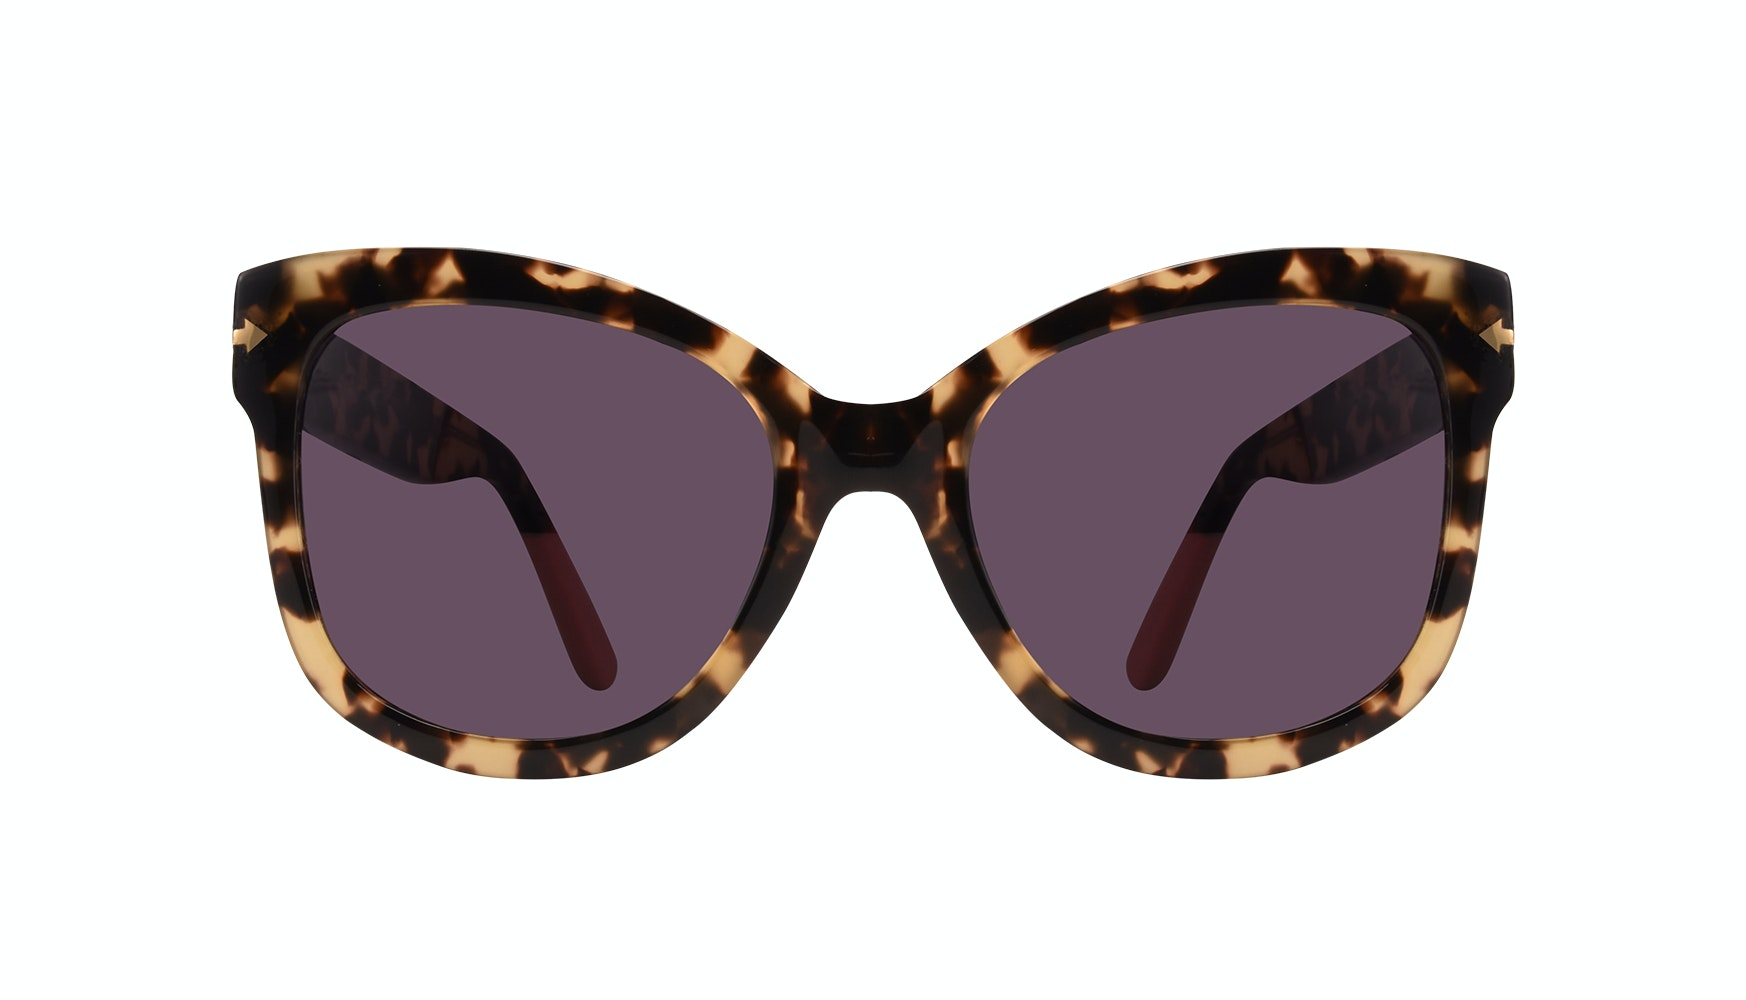 Affordable Fashion Glasses Cat Eye Square Sunglasses Women Marlo Espresso